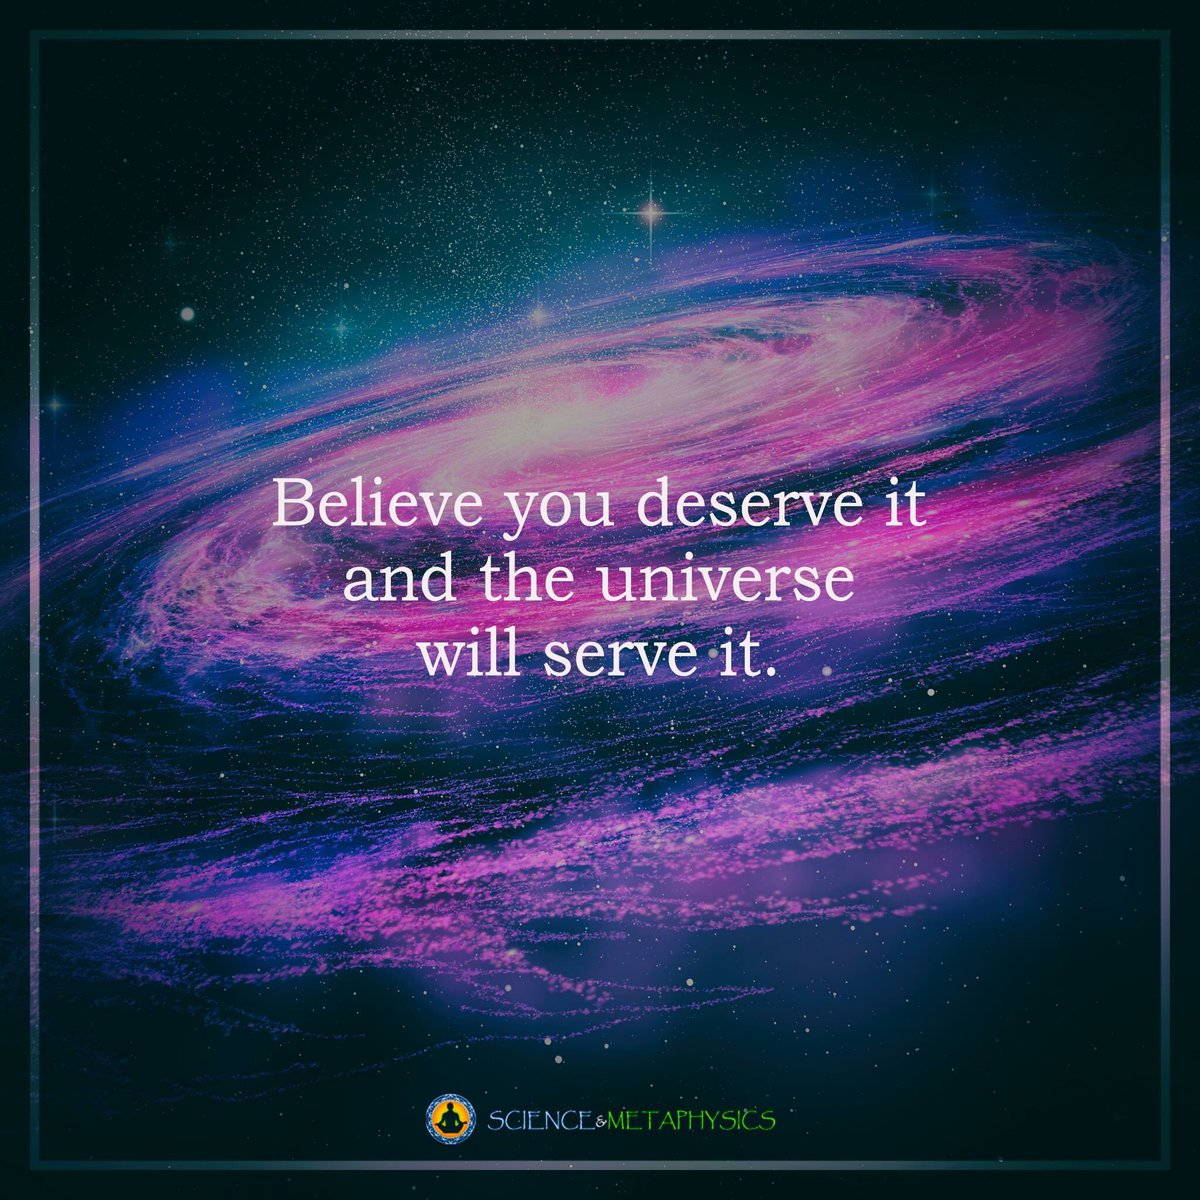 I&#39;ll take 2 helpings today. Take some too &amp; pass it along... #writerslife #kidlit #author #scifi #query #believe #achieve #amwriting #books<br>http://pic.twitter.com/8ghrJwDruO